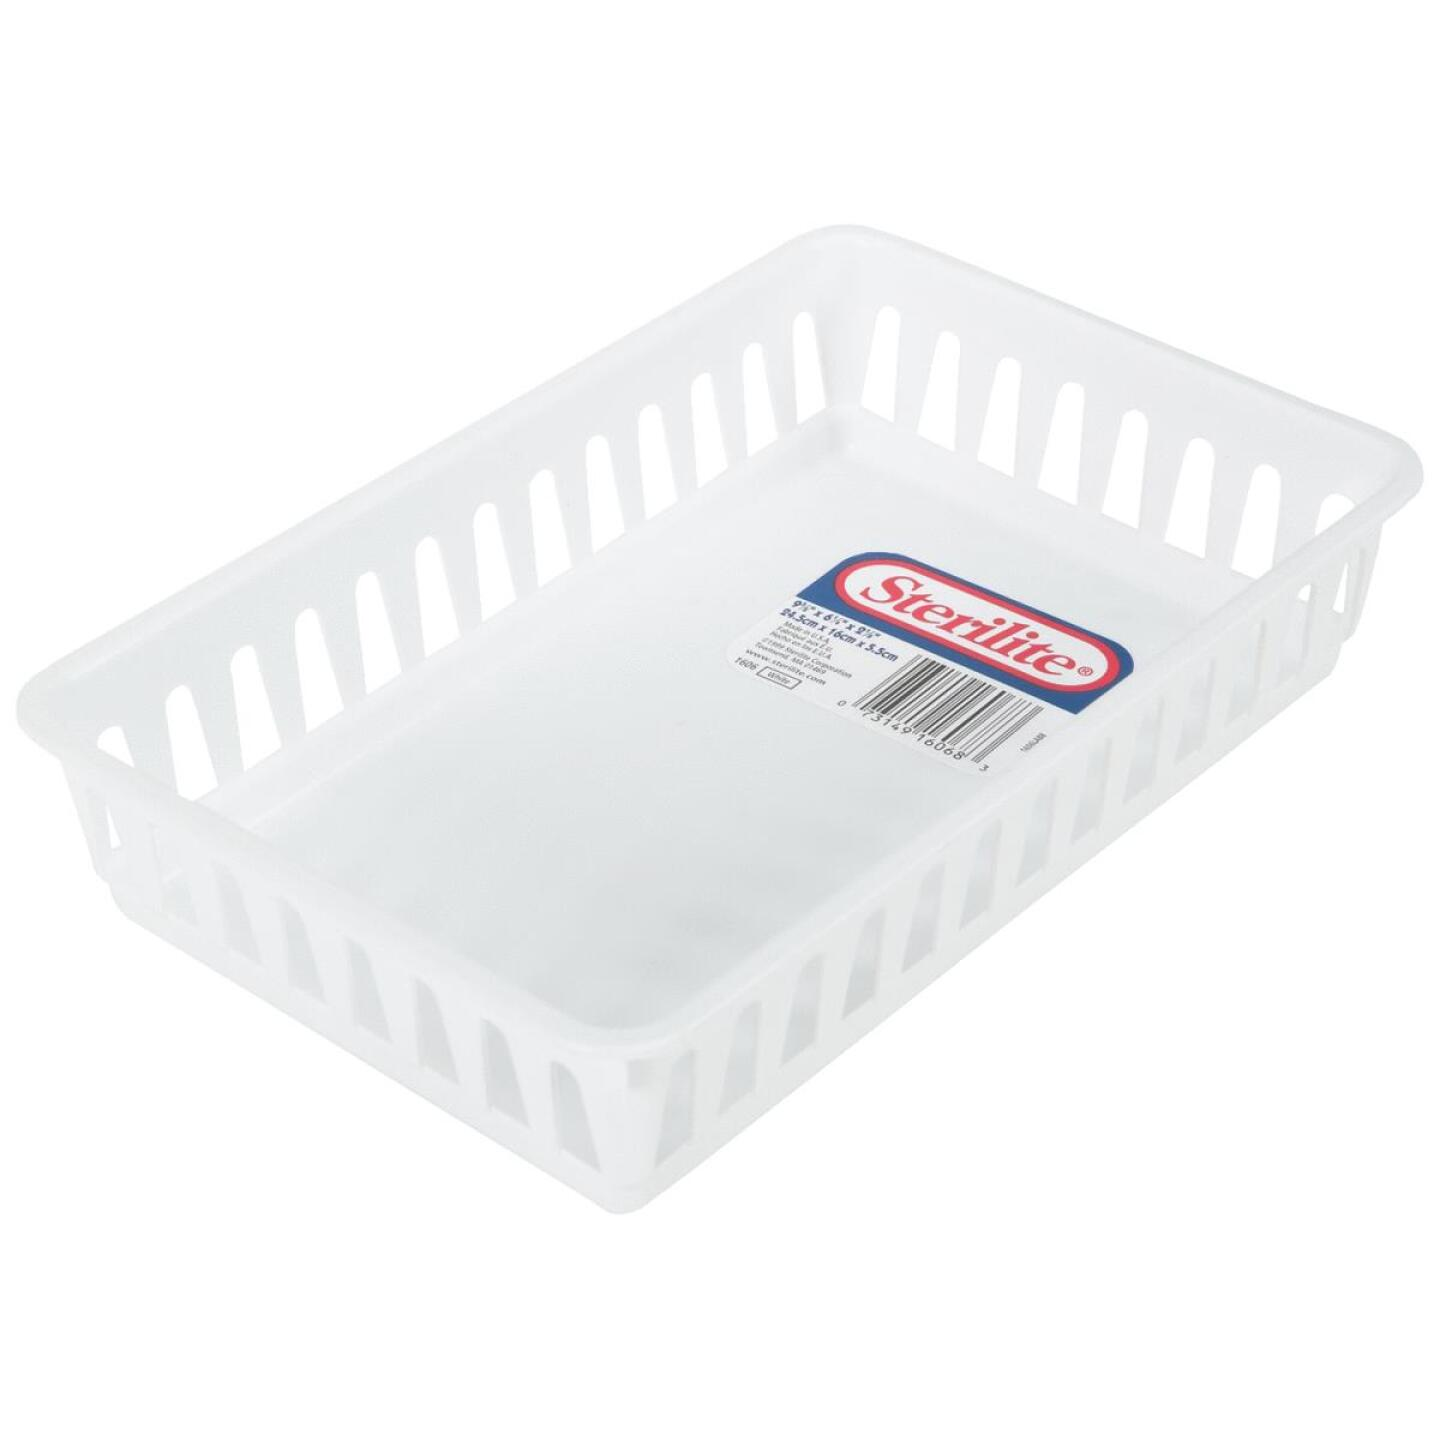 Sterlite Small Storage Tray Image 1